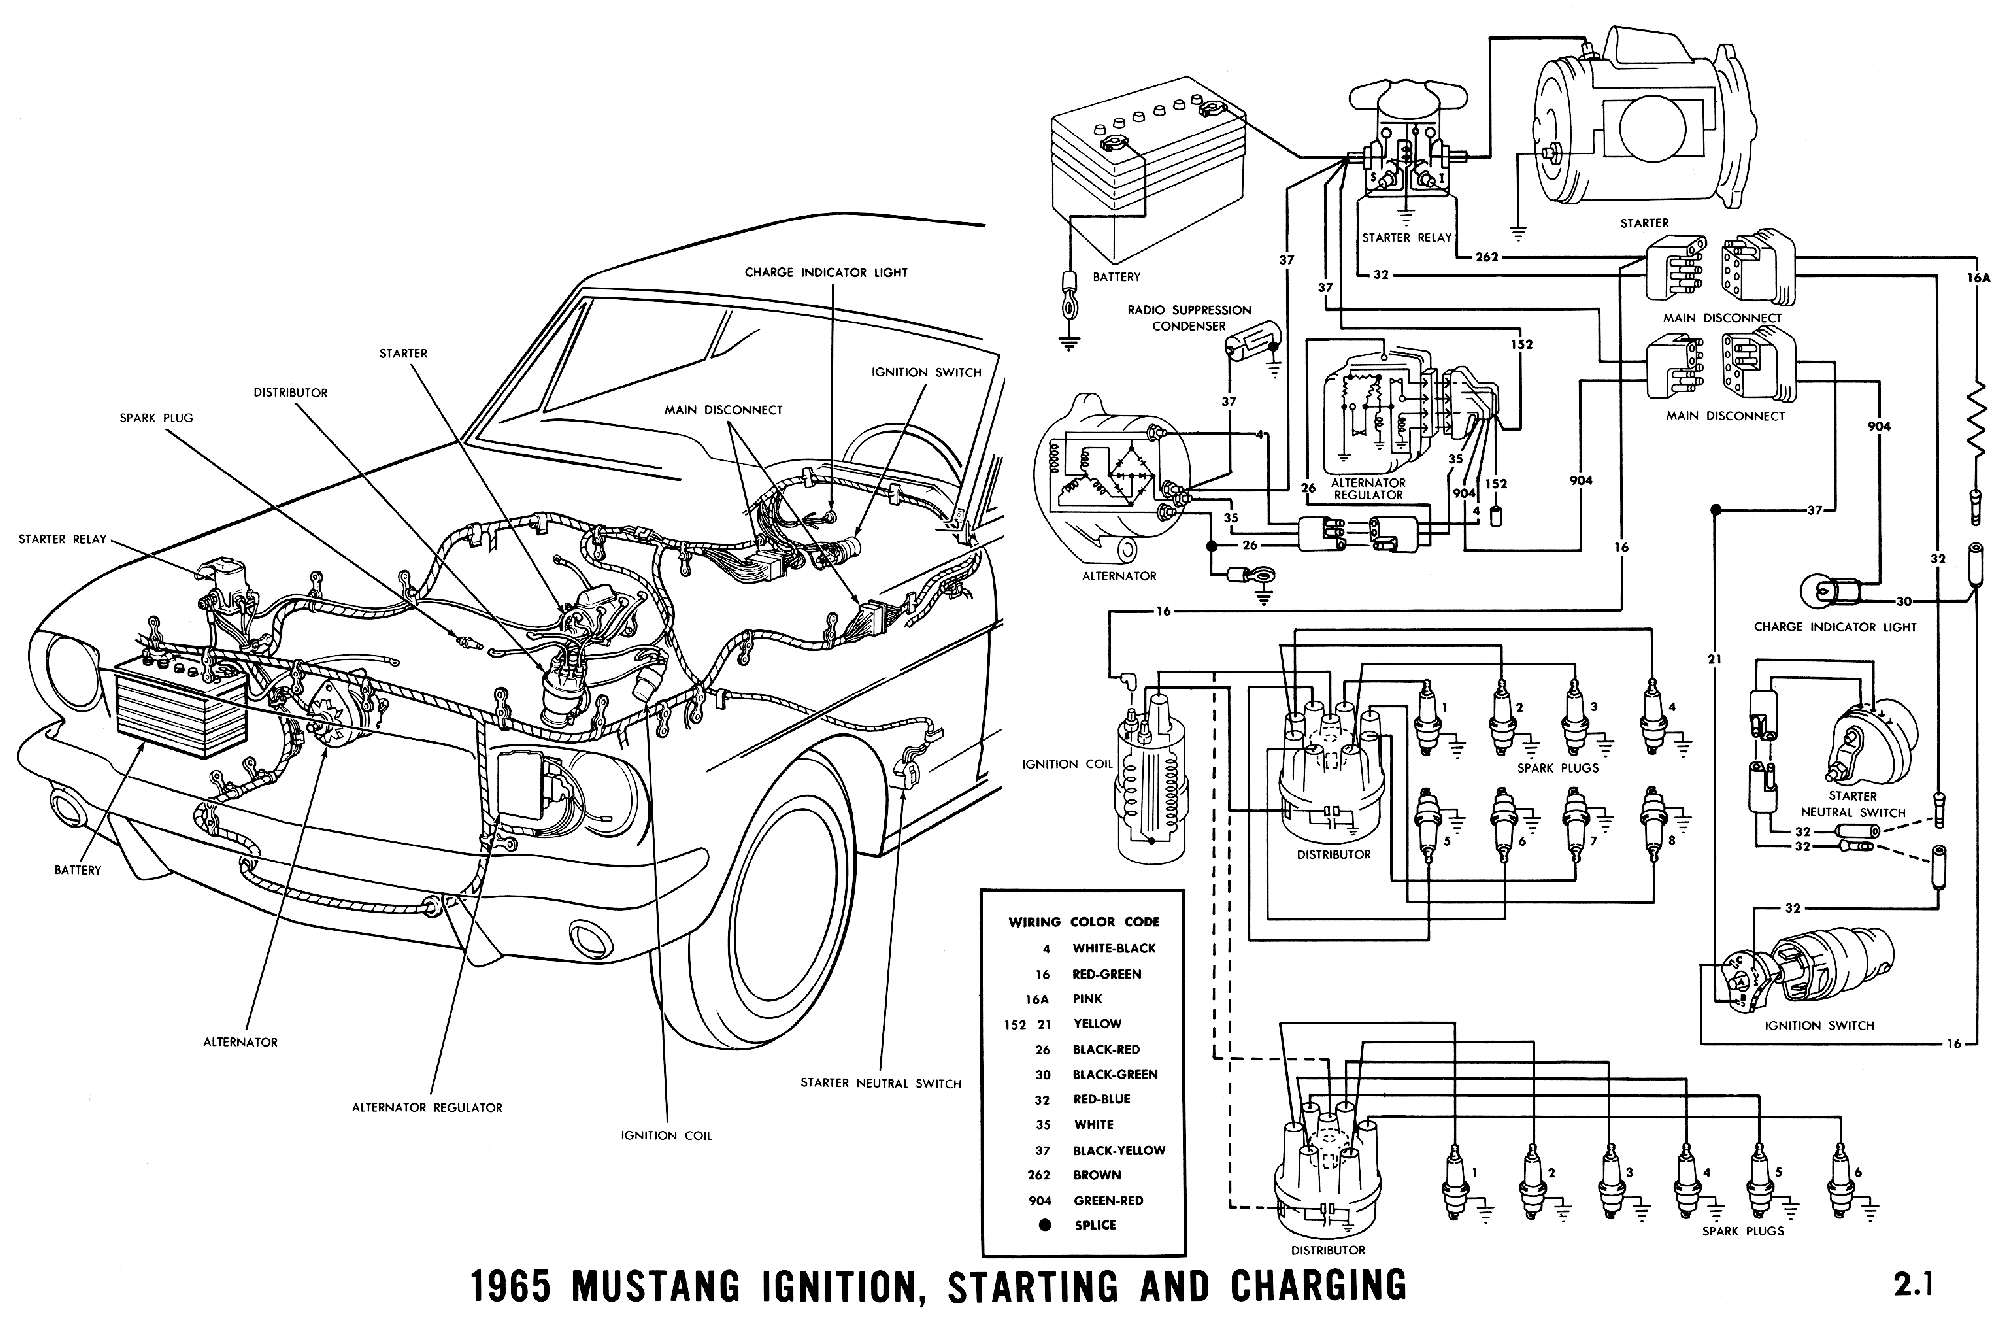 1969 Cougar Headlight Diagram House Wiring Symbols 97 Mercury Mountaineer Harness 1965 Mustang Diagrams Average Joe Restoration 02 Assembly Muscle Car Headlights